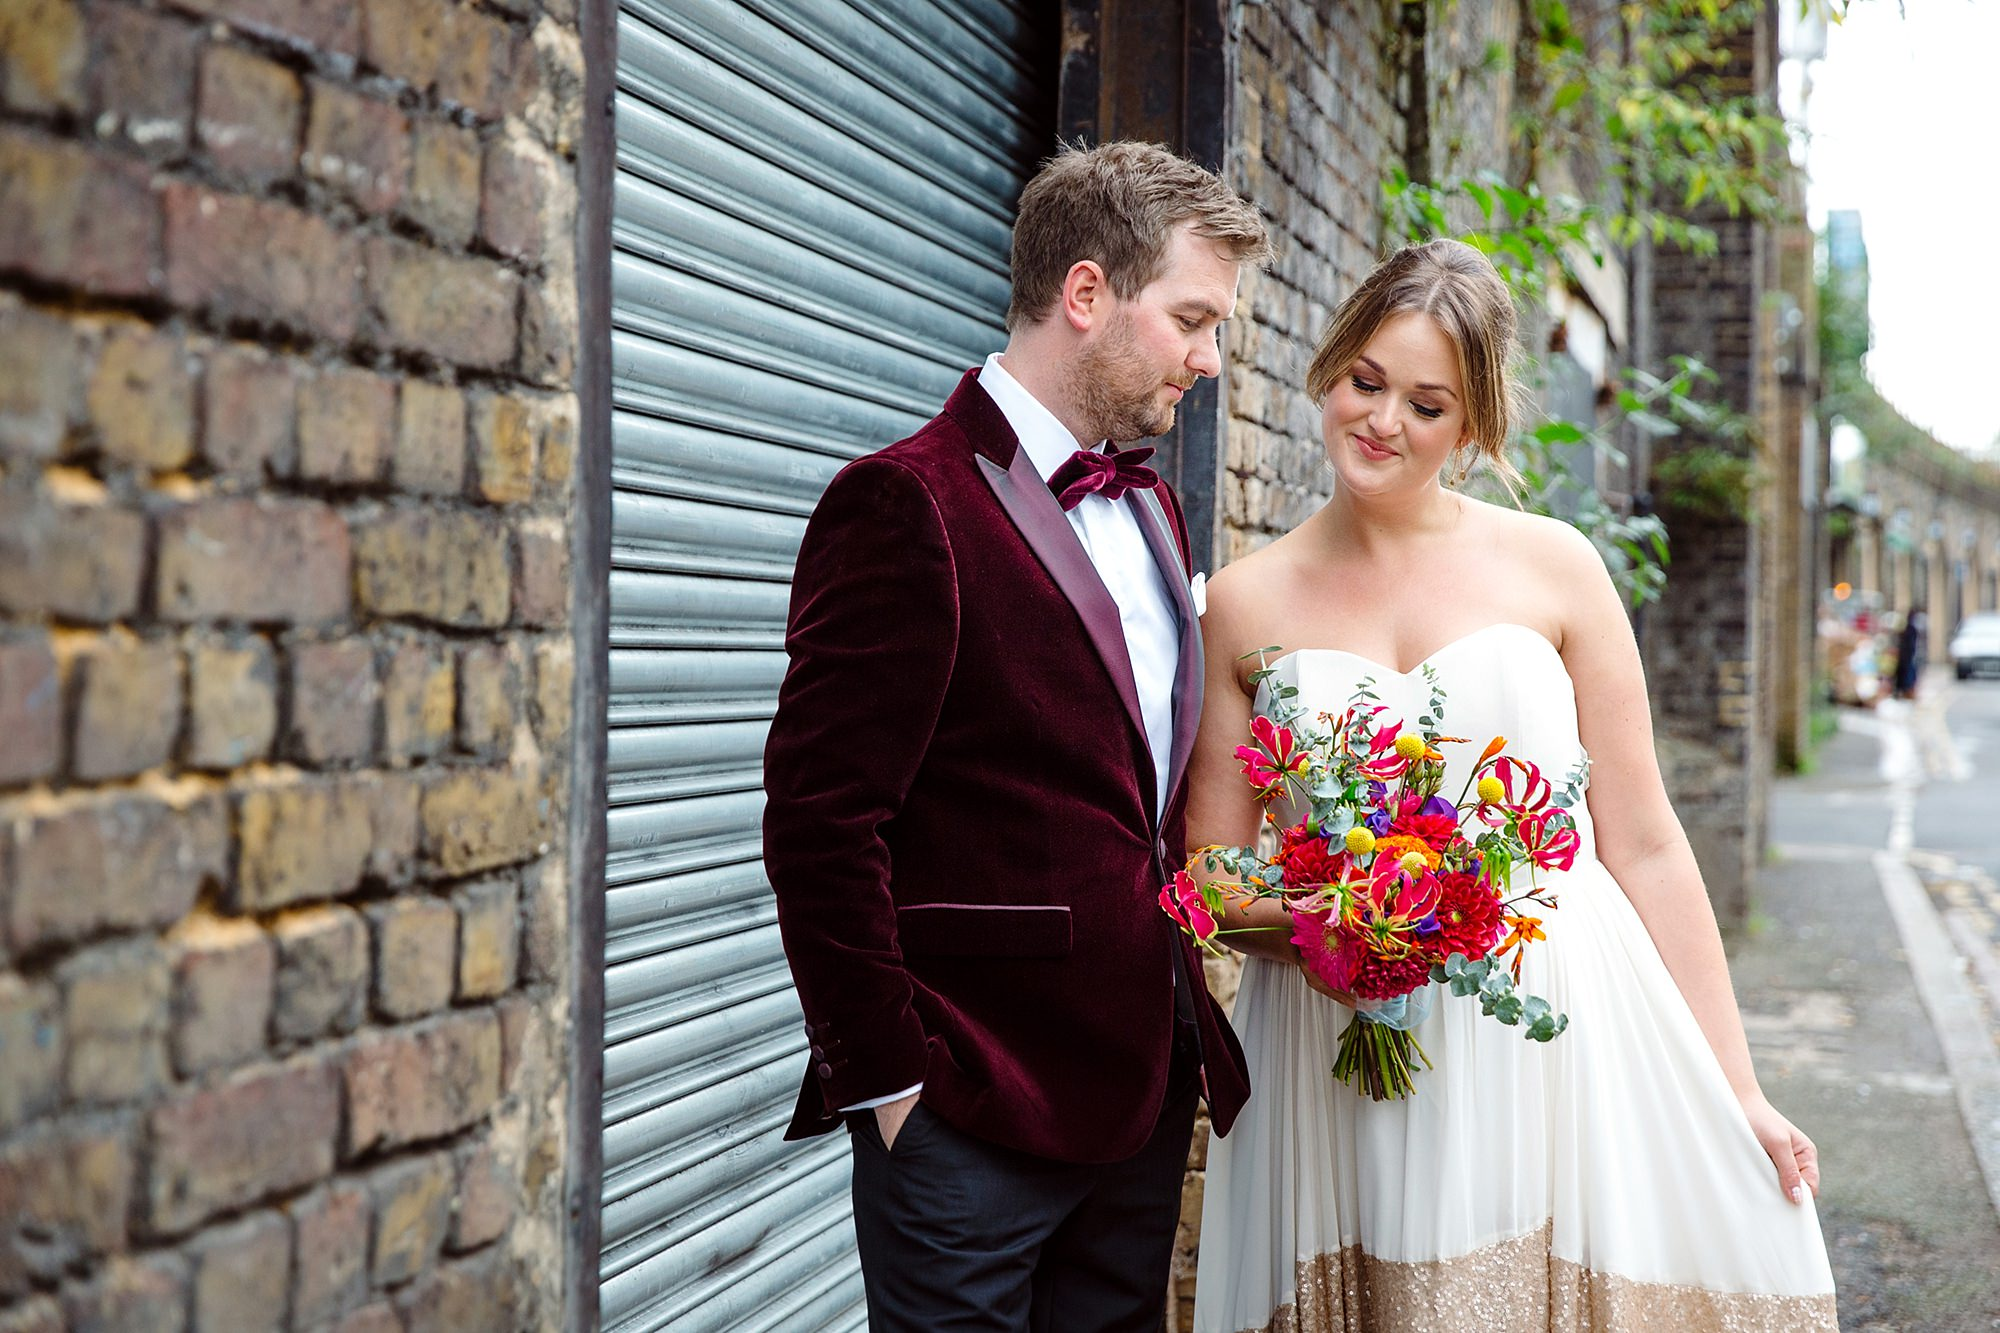 Fun London Wedding portrait of bride and groom together in brixton